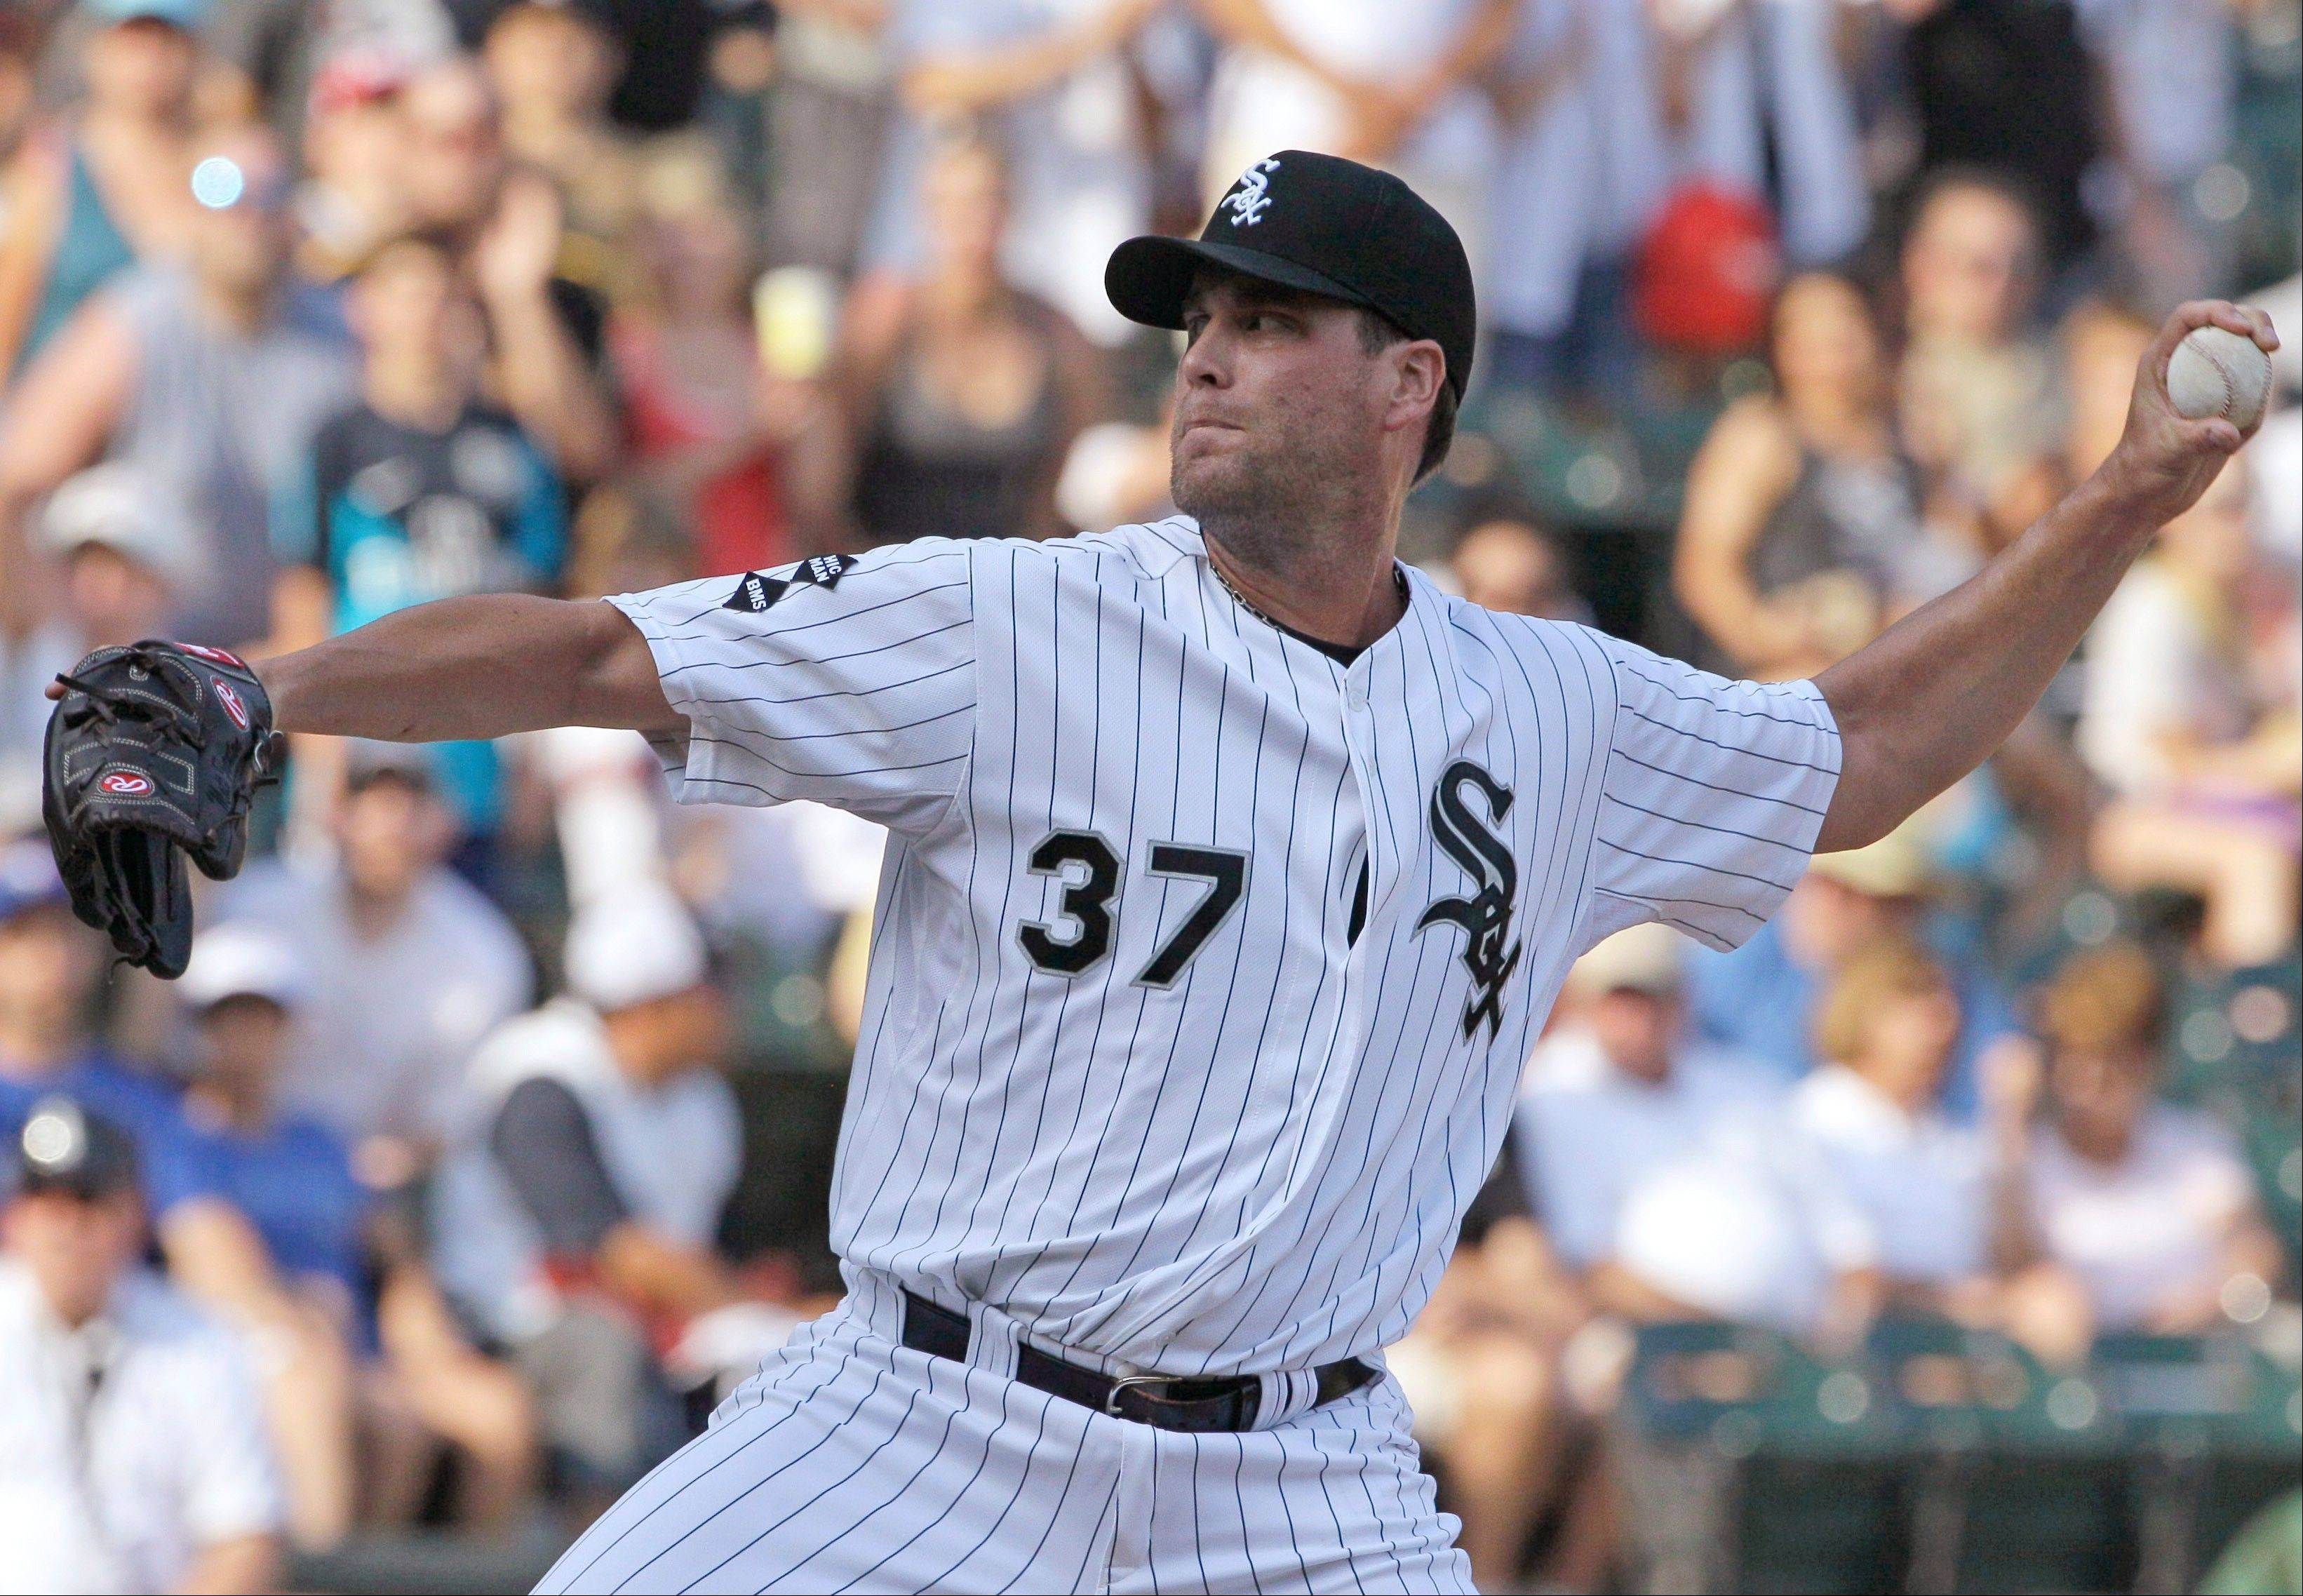 White Sox relief pitcher Matt Thornton earned the save in Saturday�s 2-0 victory over the Blue Jays by getting the final four outs.